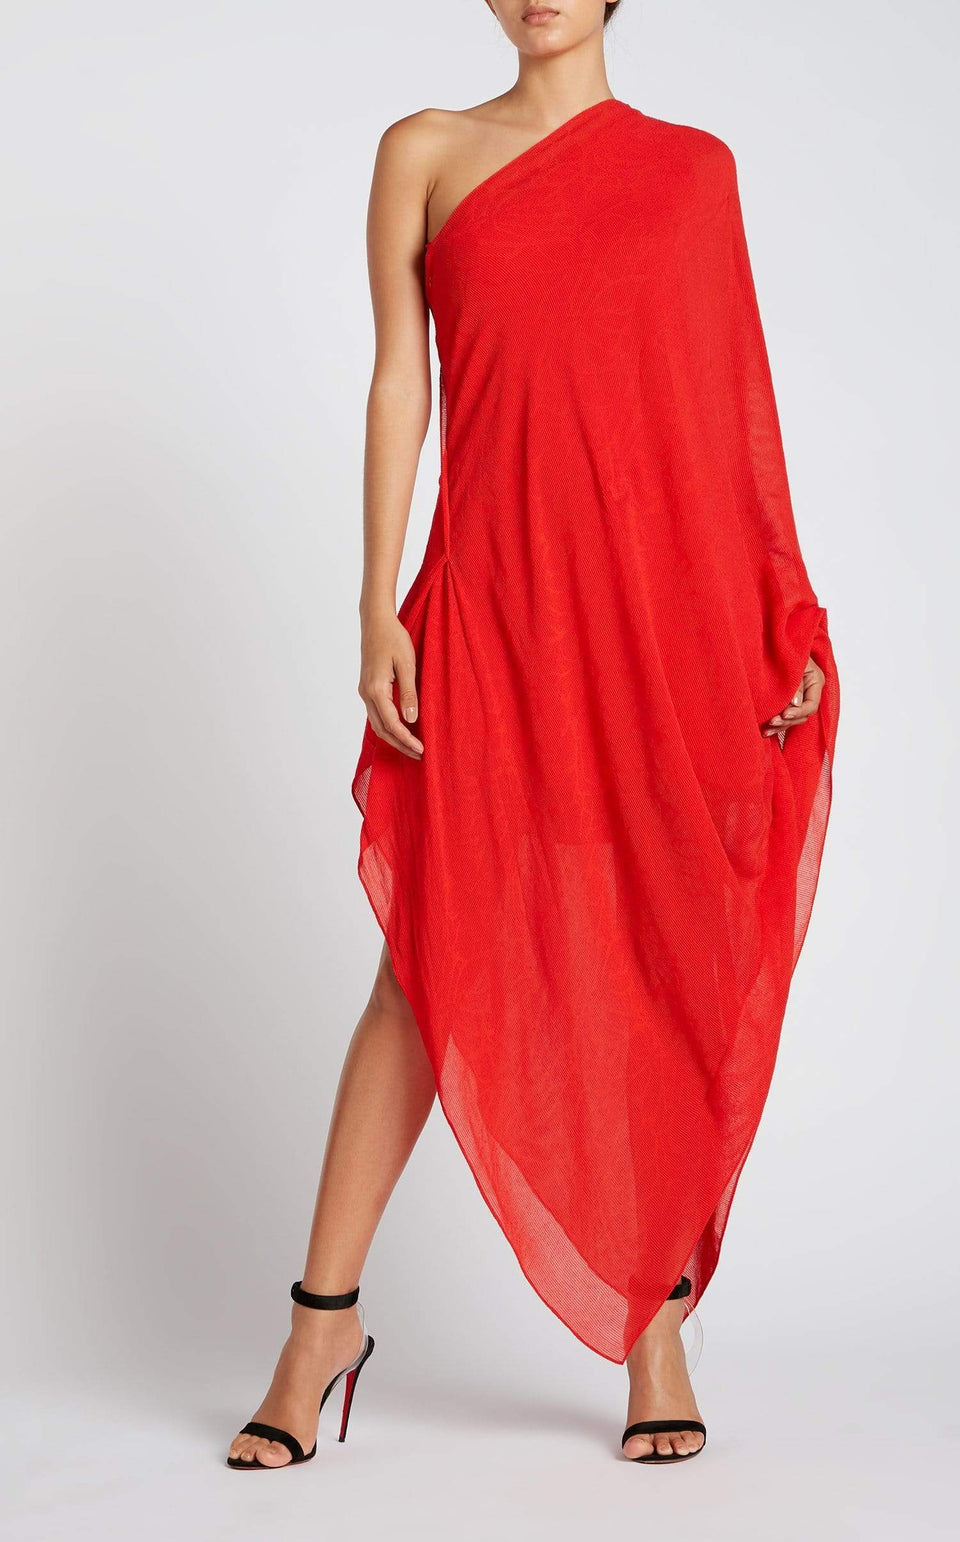 Graham Dress In Red/Red Lrg Painterly from Roland Mouret